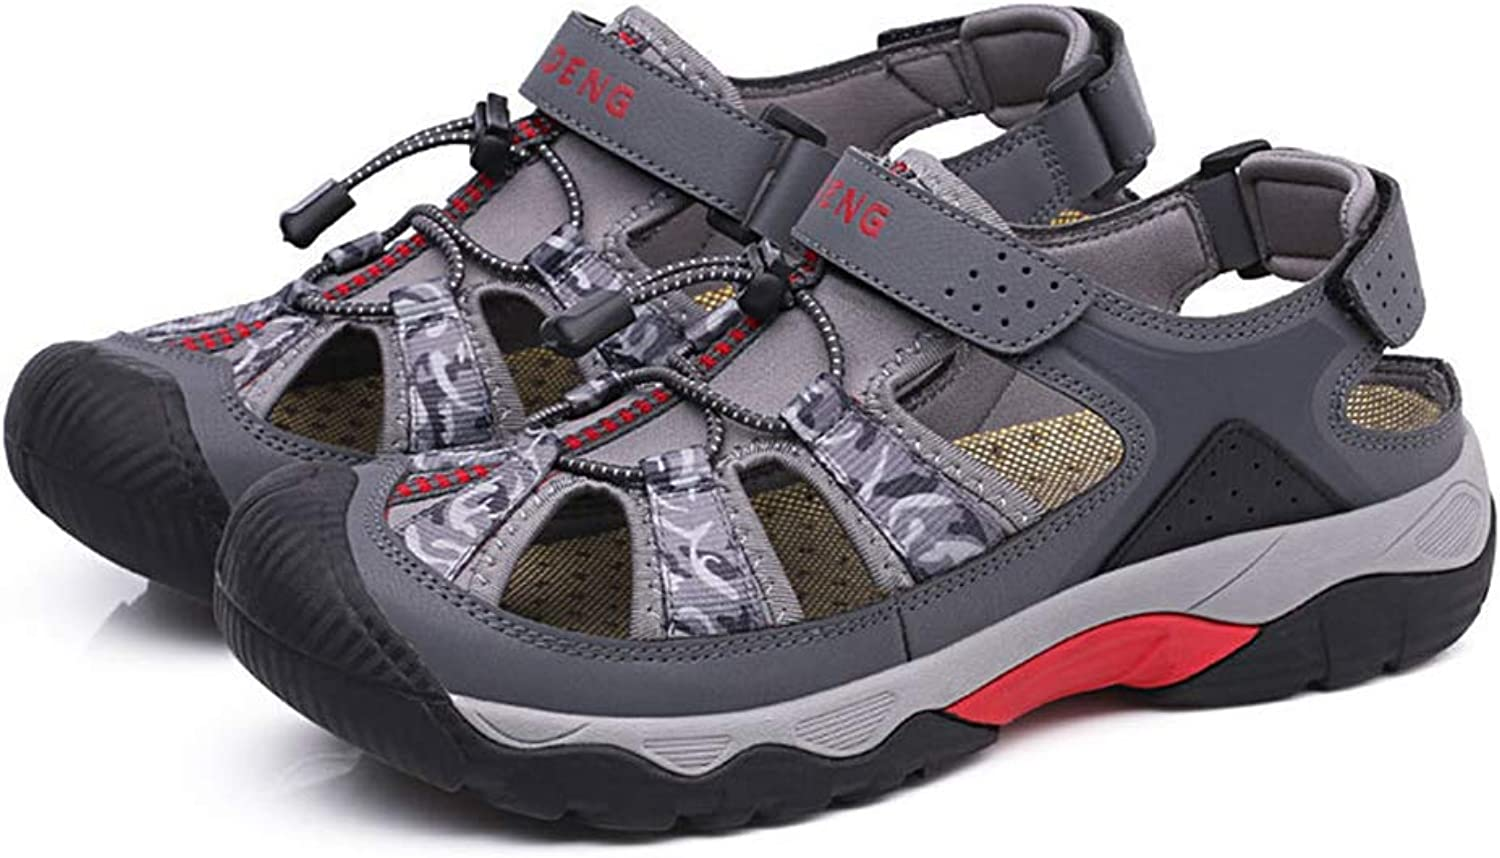 Men's Sandals Sports Outdoor Sandals Summer Casual Athletic Beach shoes Closed-Toe Fisherman Breathable Hiking Anti Collision,b,41